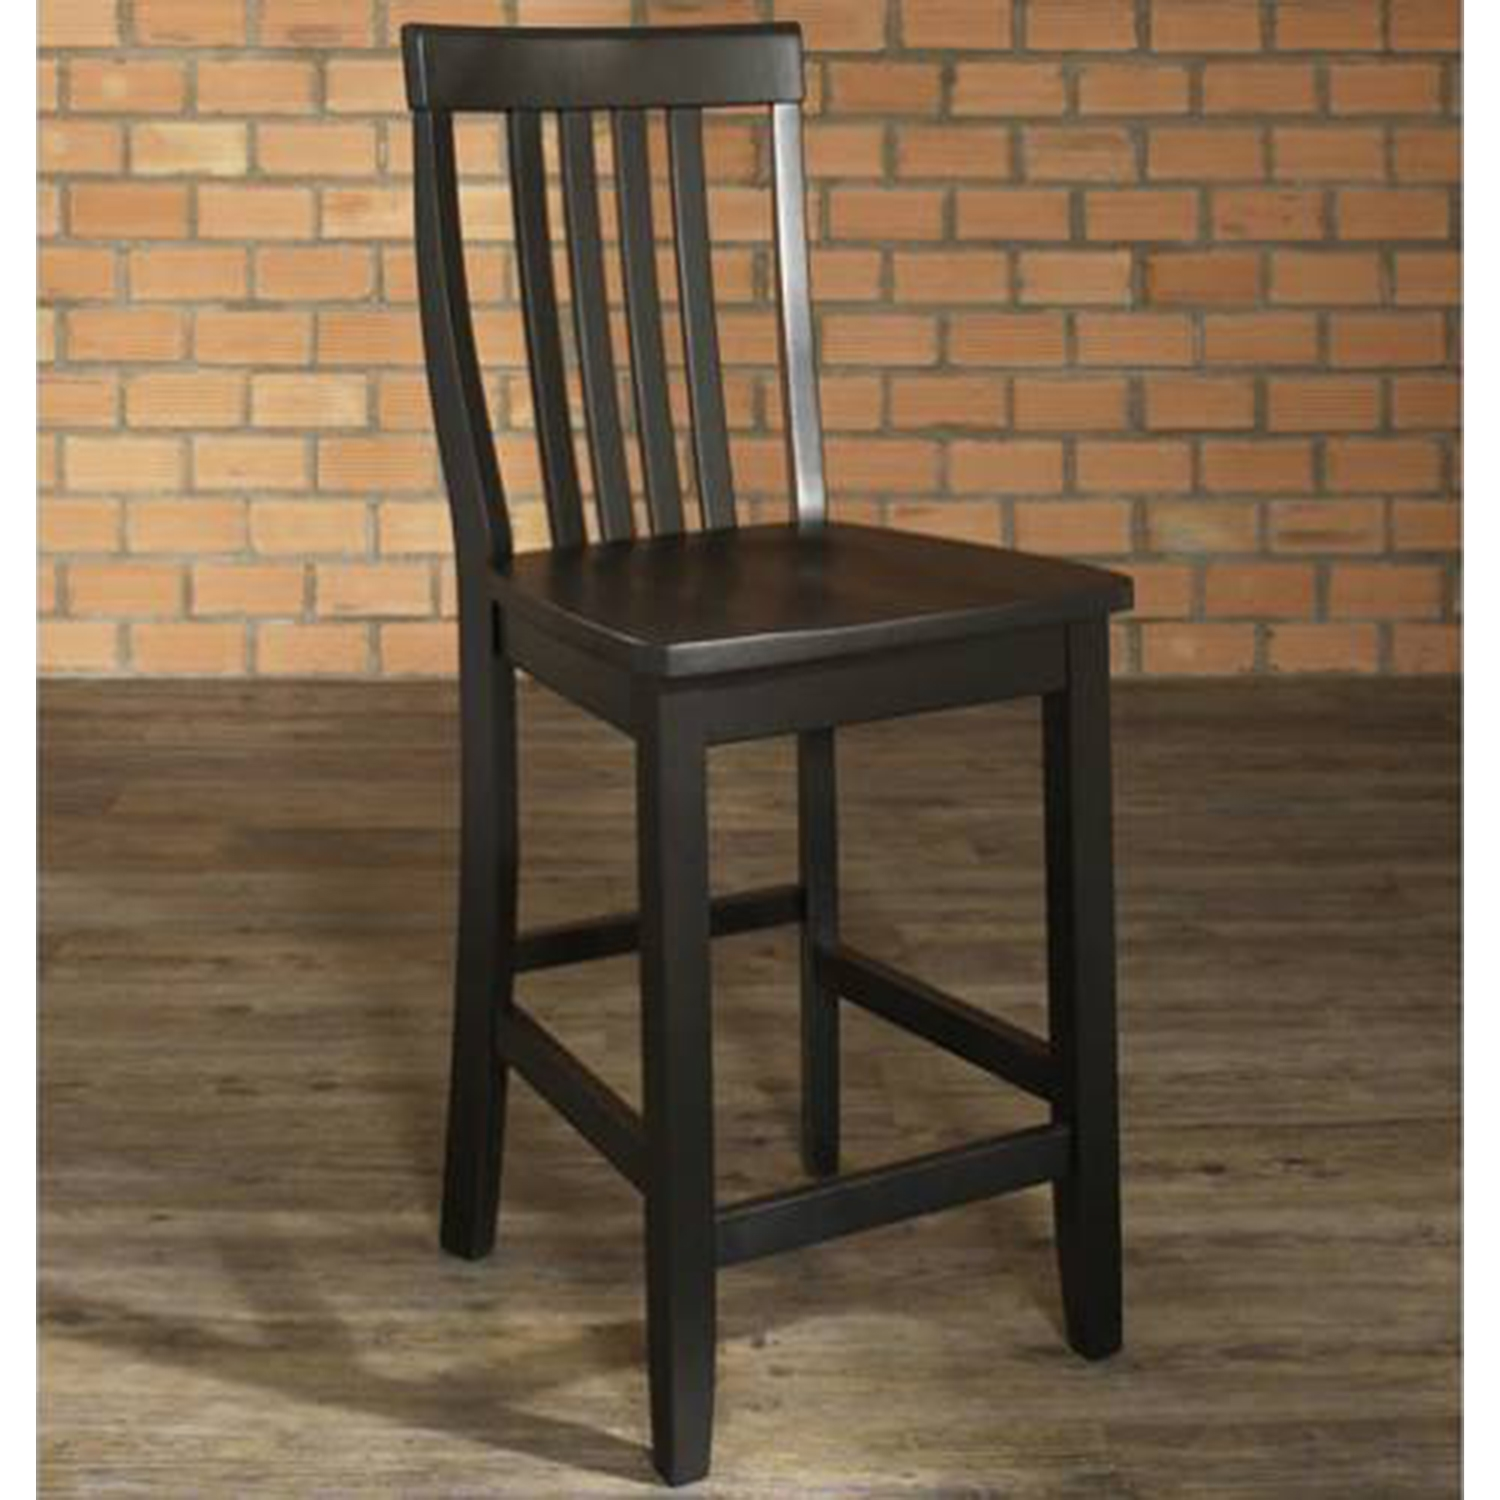 School House Bar Stool with 24 Inch Seat Height - Black (Set of 2) - CROS-CF500324-BK